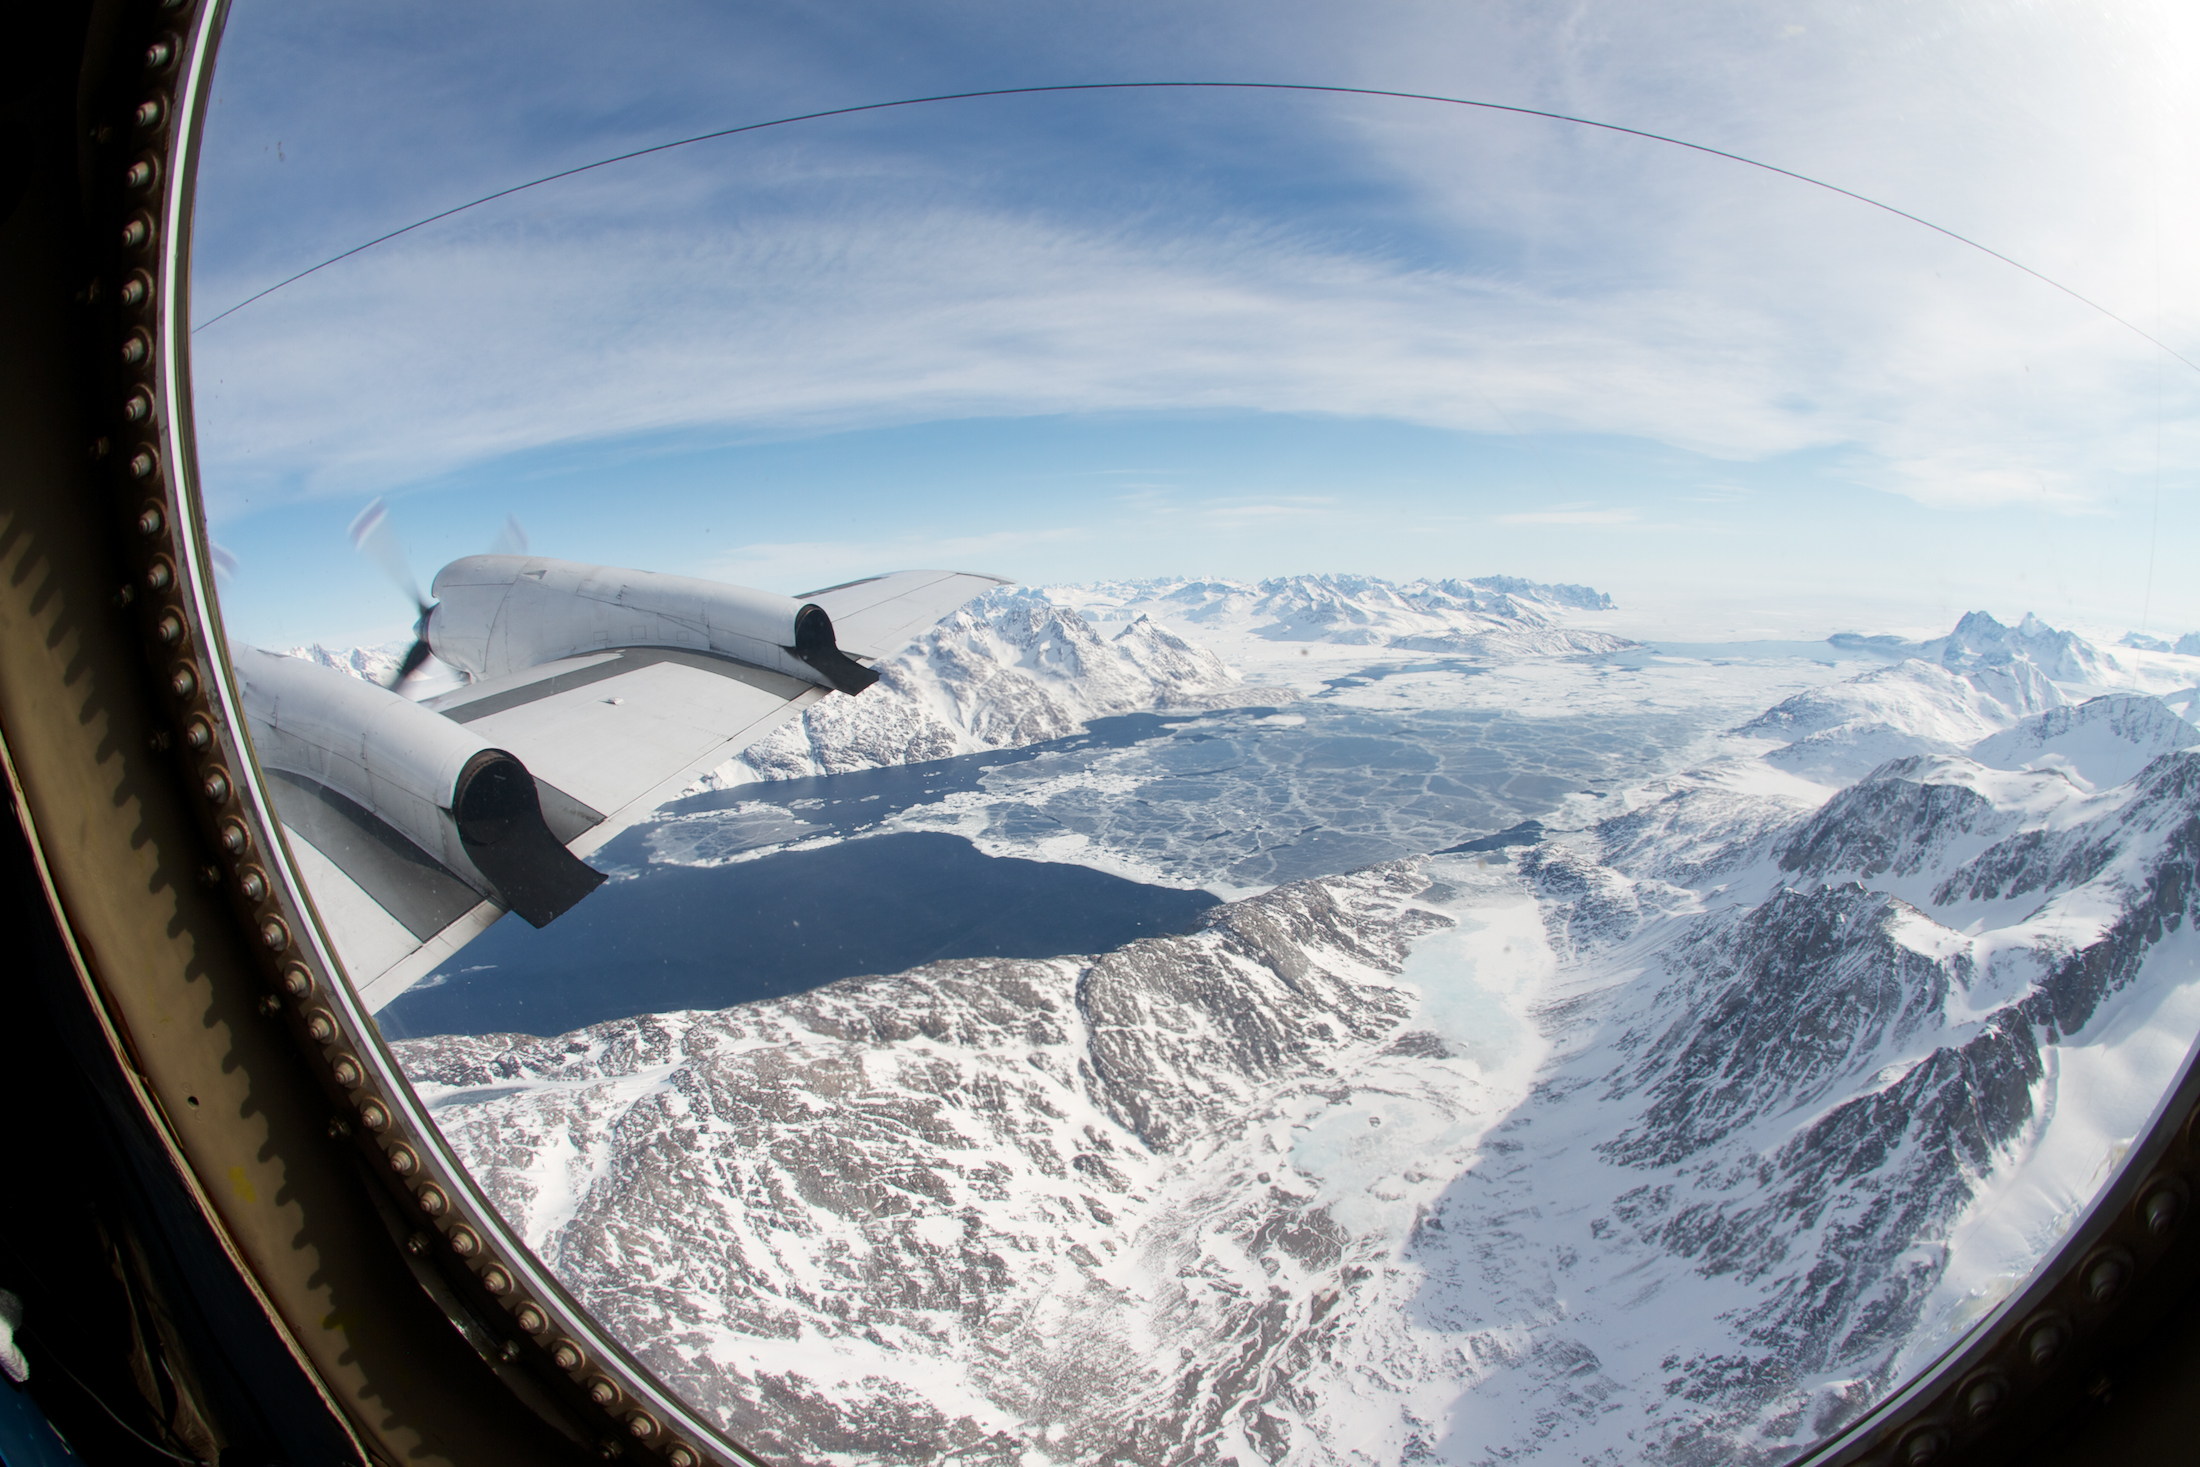 Icy water in the fjord of the Kangerdlugssuaq Glacier in eastern Greenland, as seen from NASA's P-3B aircraft during an Operation IceBridge flight. Diverse data on the Arctic, including IceBridge data, can be discovered through the Arctic Data Explorer. Image Credit: NASA/Jefferson Beck.